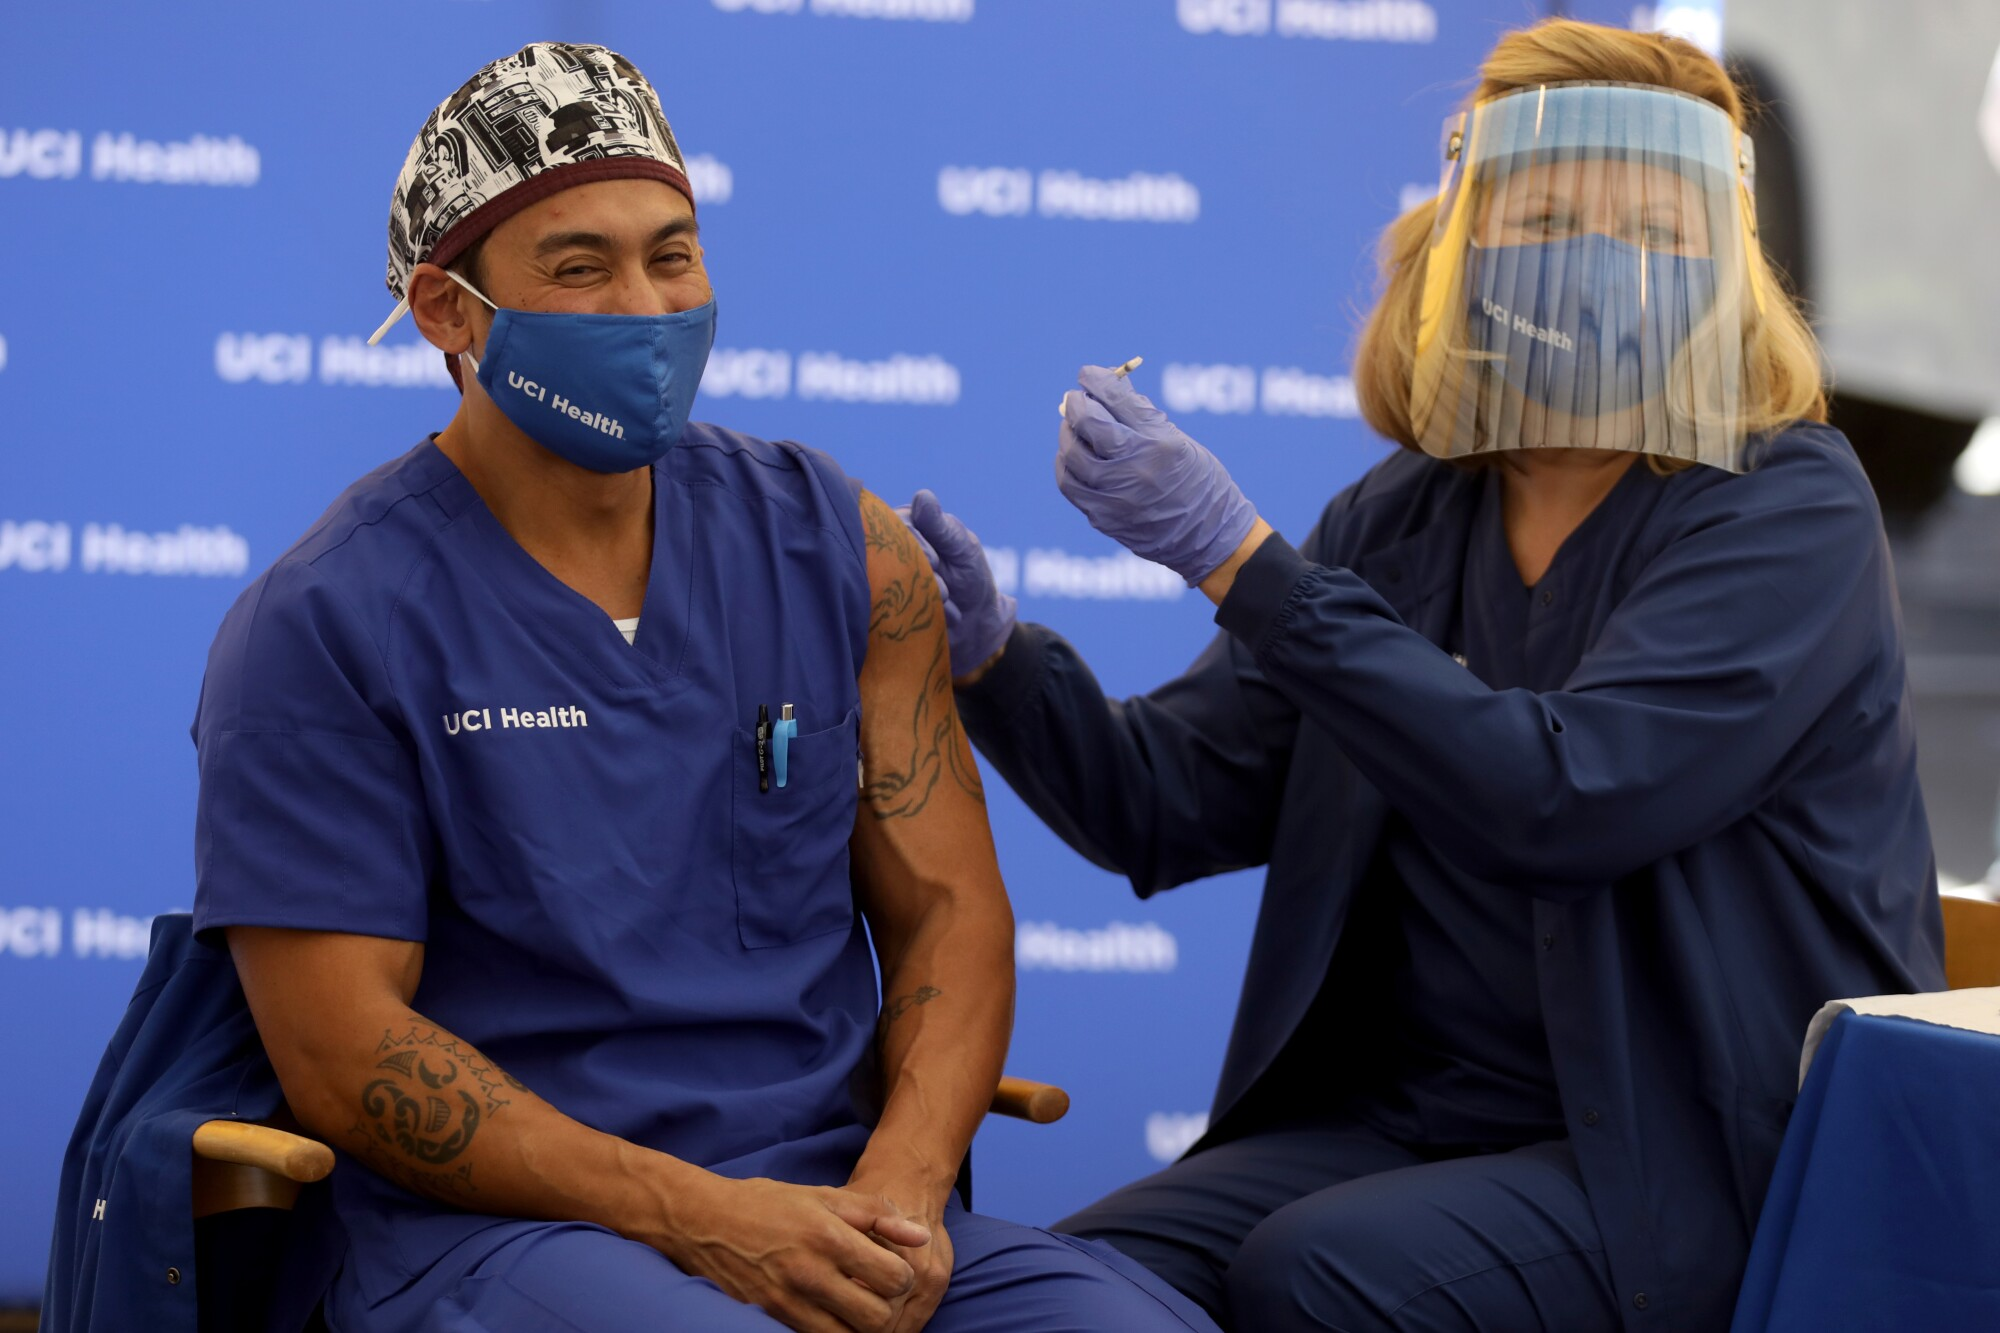 A healthcare worker dressed in scrubs receives a vaccine administered by a nurse wearing a face shield